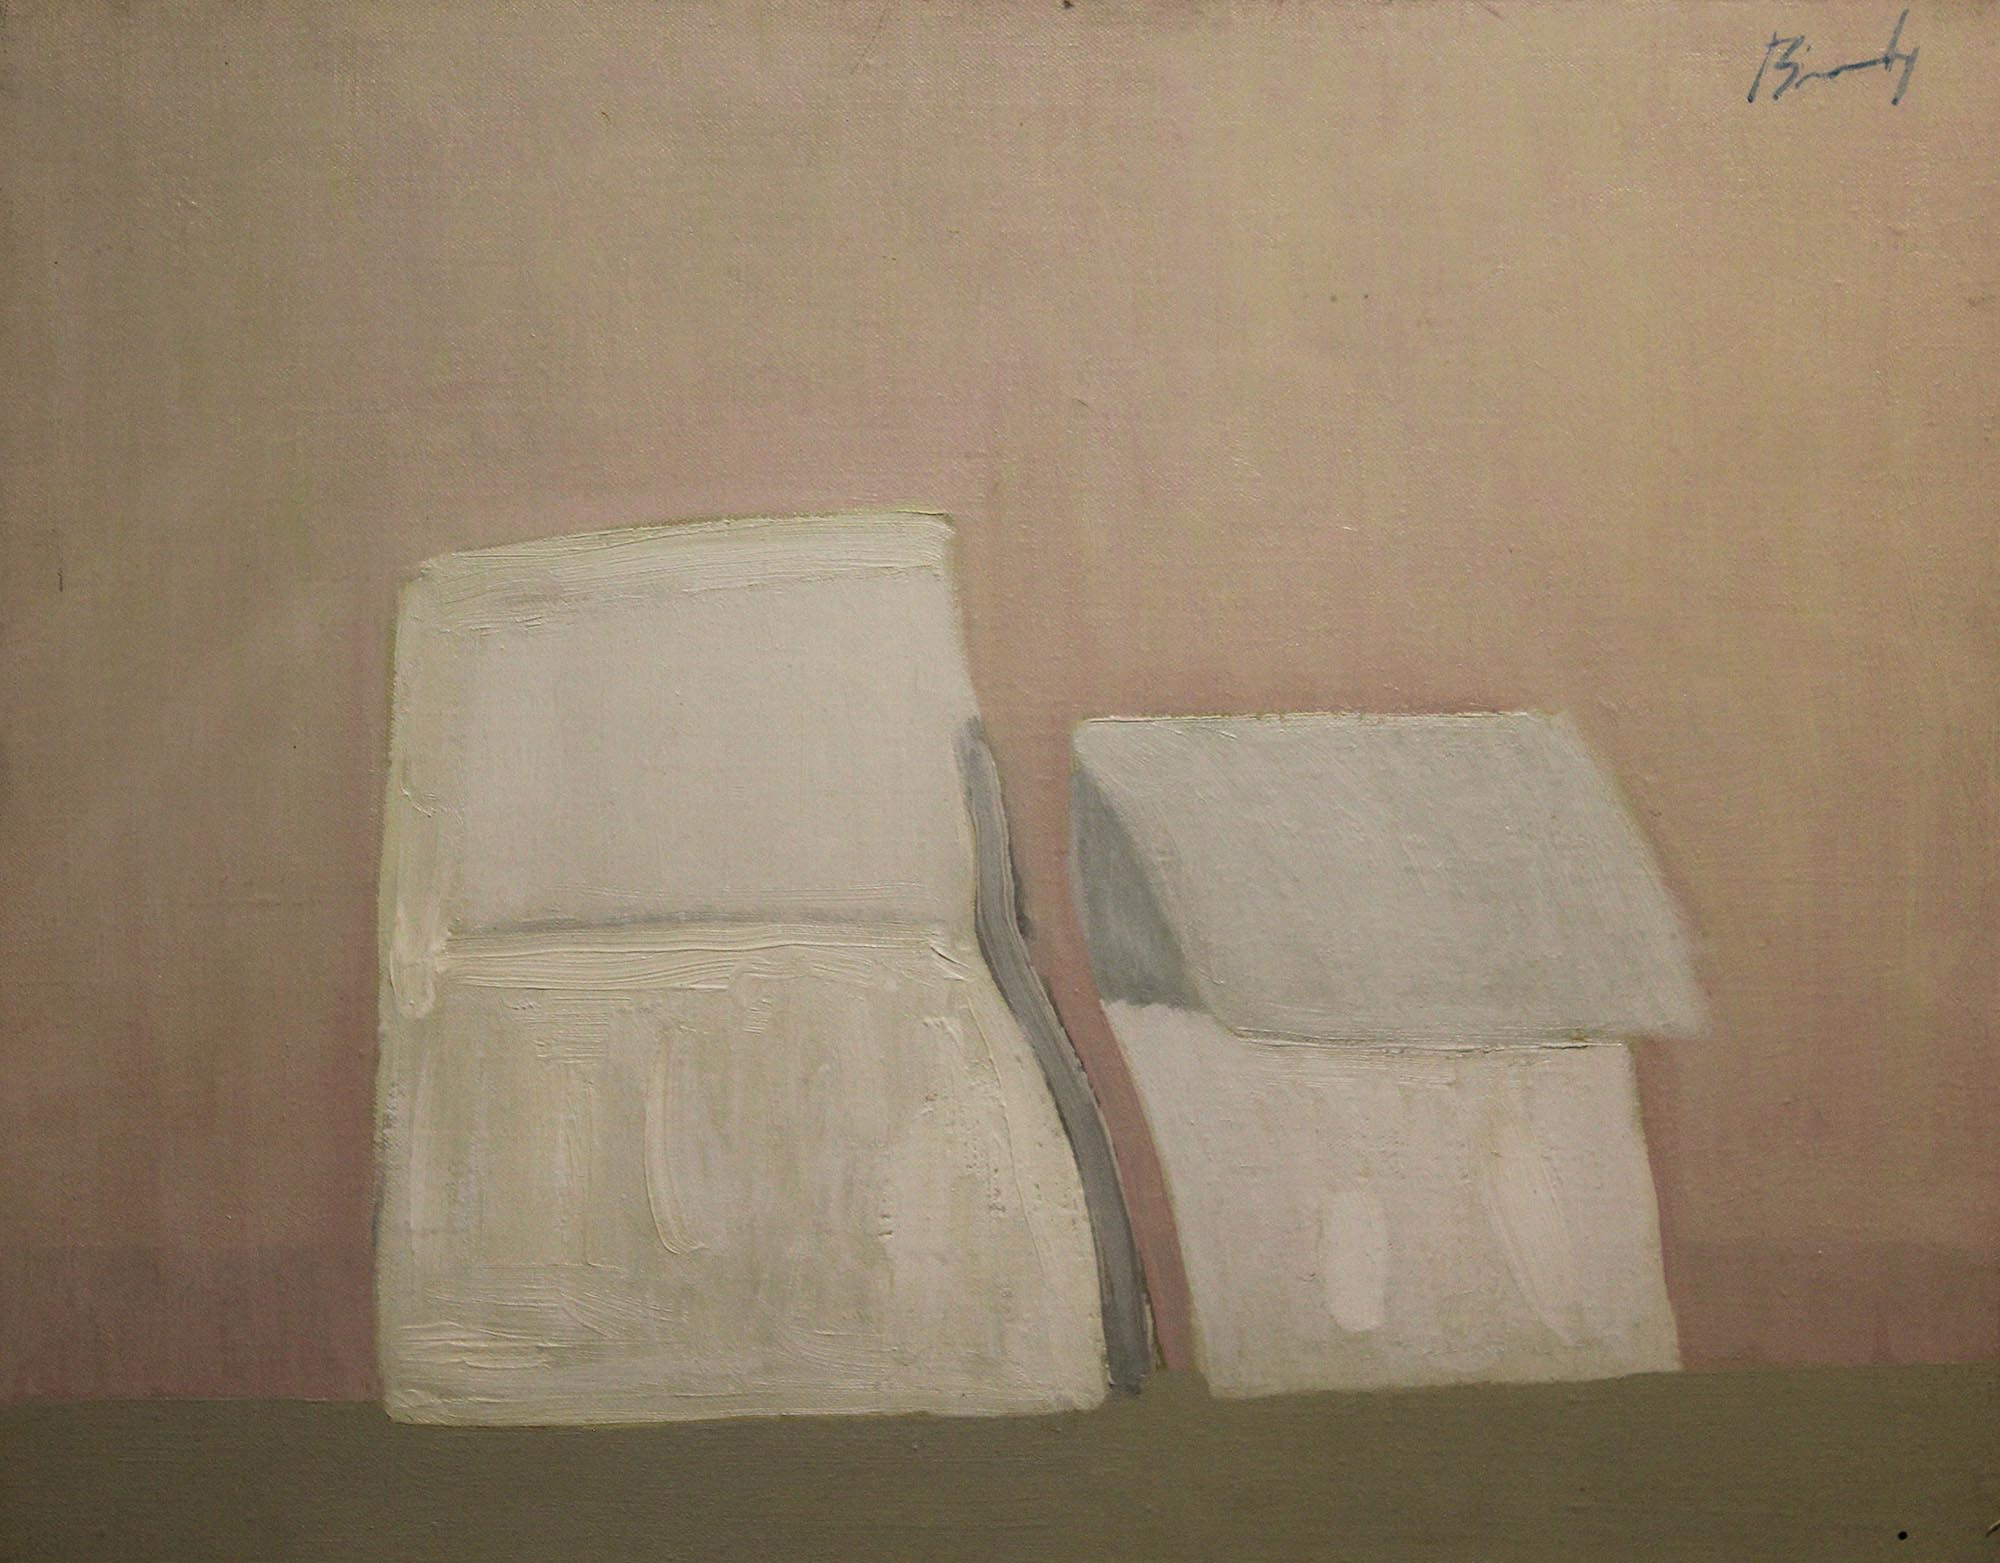 """Lot 35 - Charles Brady HRHA, 1926-1997 TORN ENVELOPE Oil on canvas, 12"""" x 15"""" (30.5 x 38cm), signed; signed"""